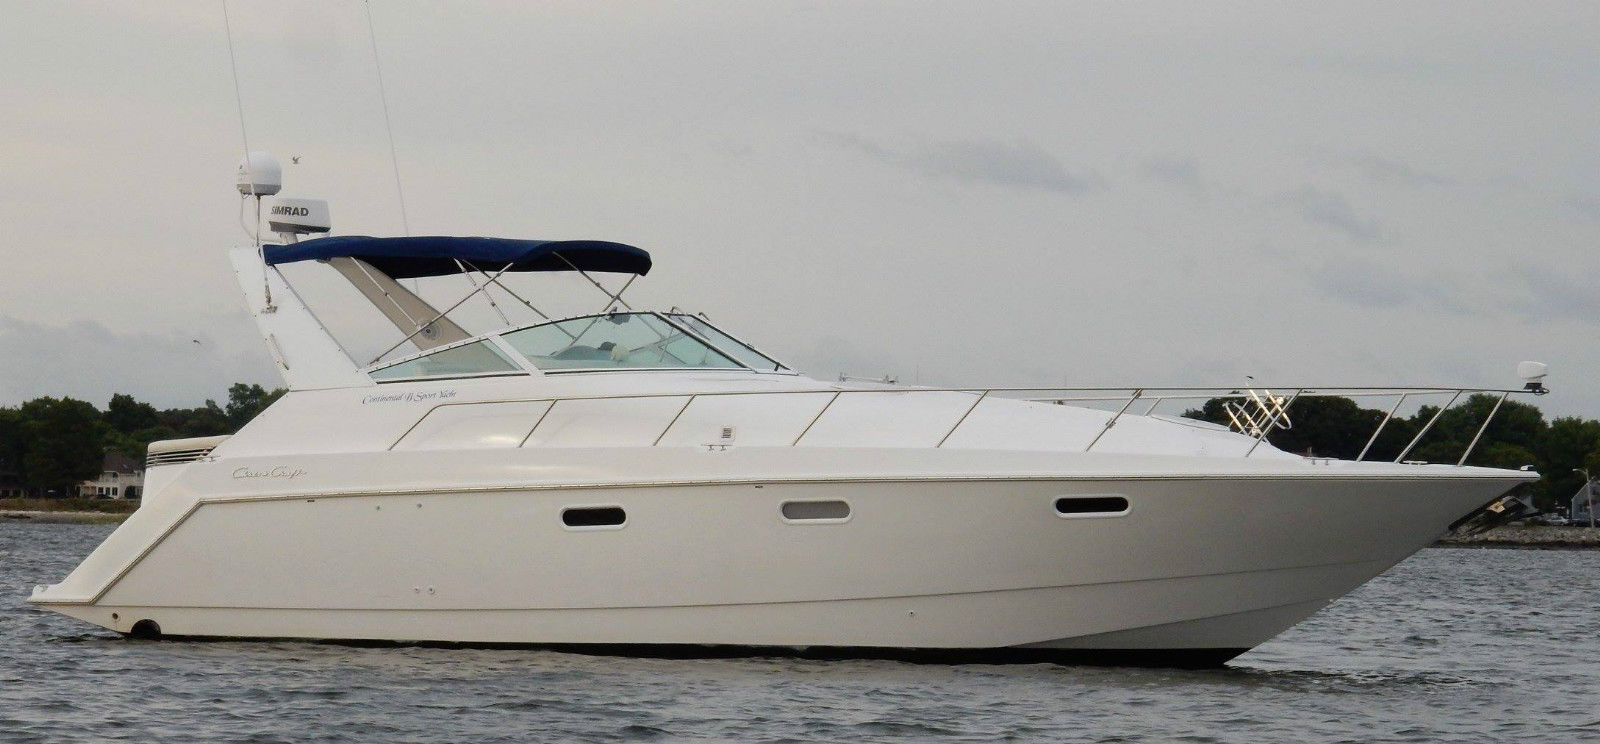 Chris Craft Continental 380